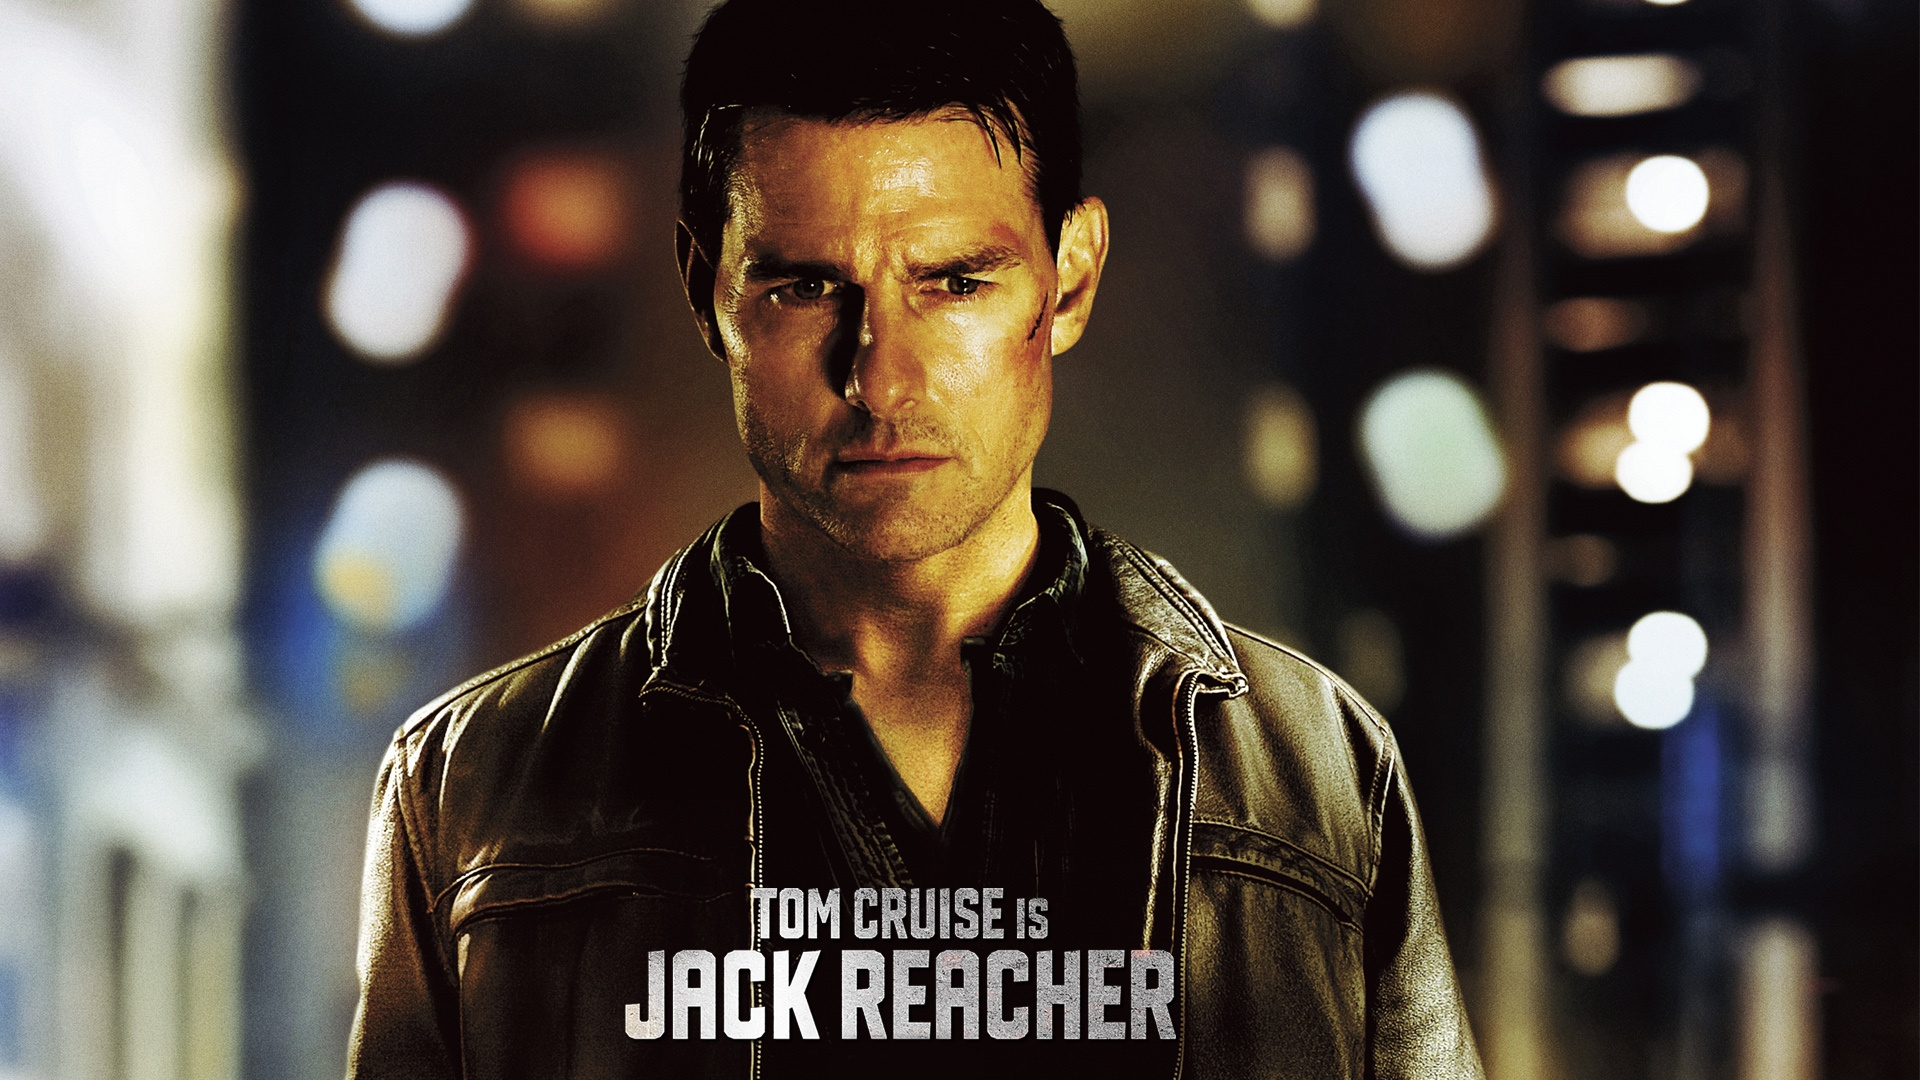 Download 1920x1080 HD Wallpaper tom cruise face close up jack 1920x1080